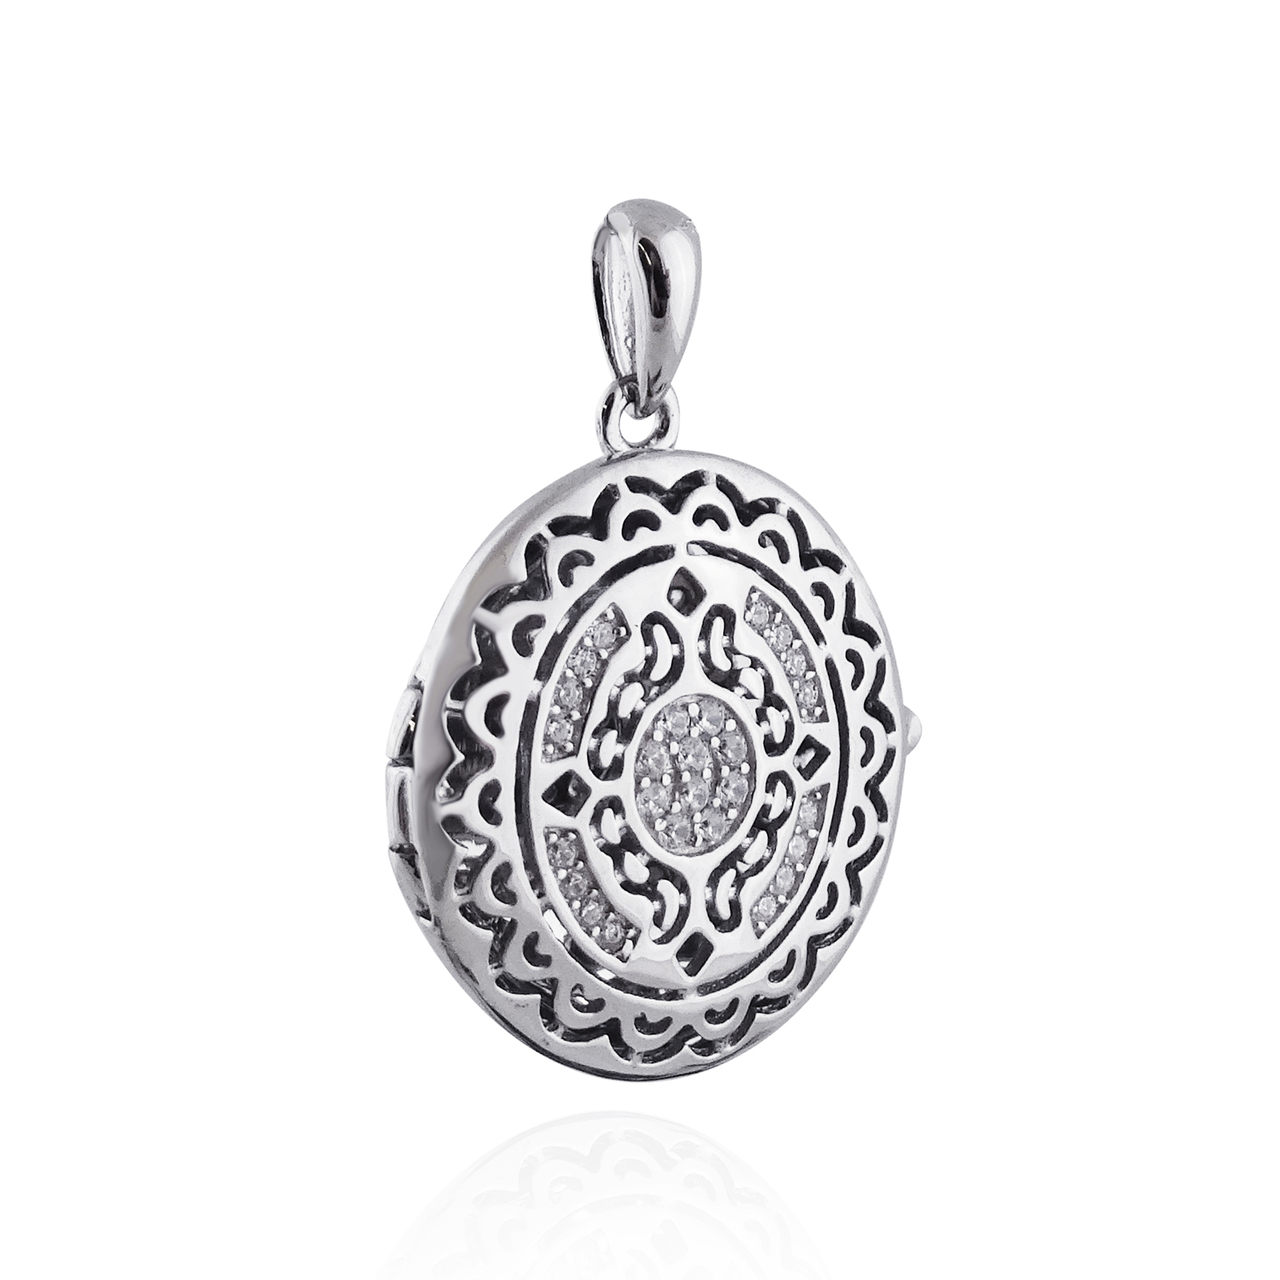 Decorative Filigree Locket Necklace - 925 Sterling Silver - CZ Accents